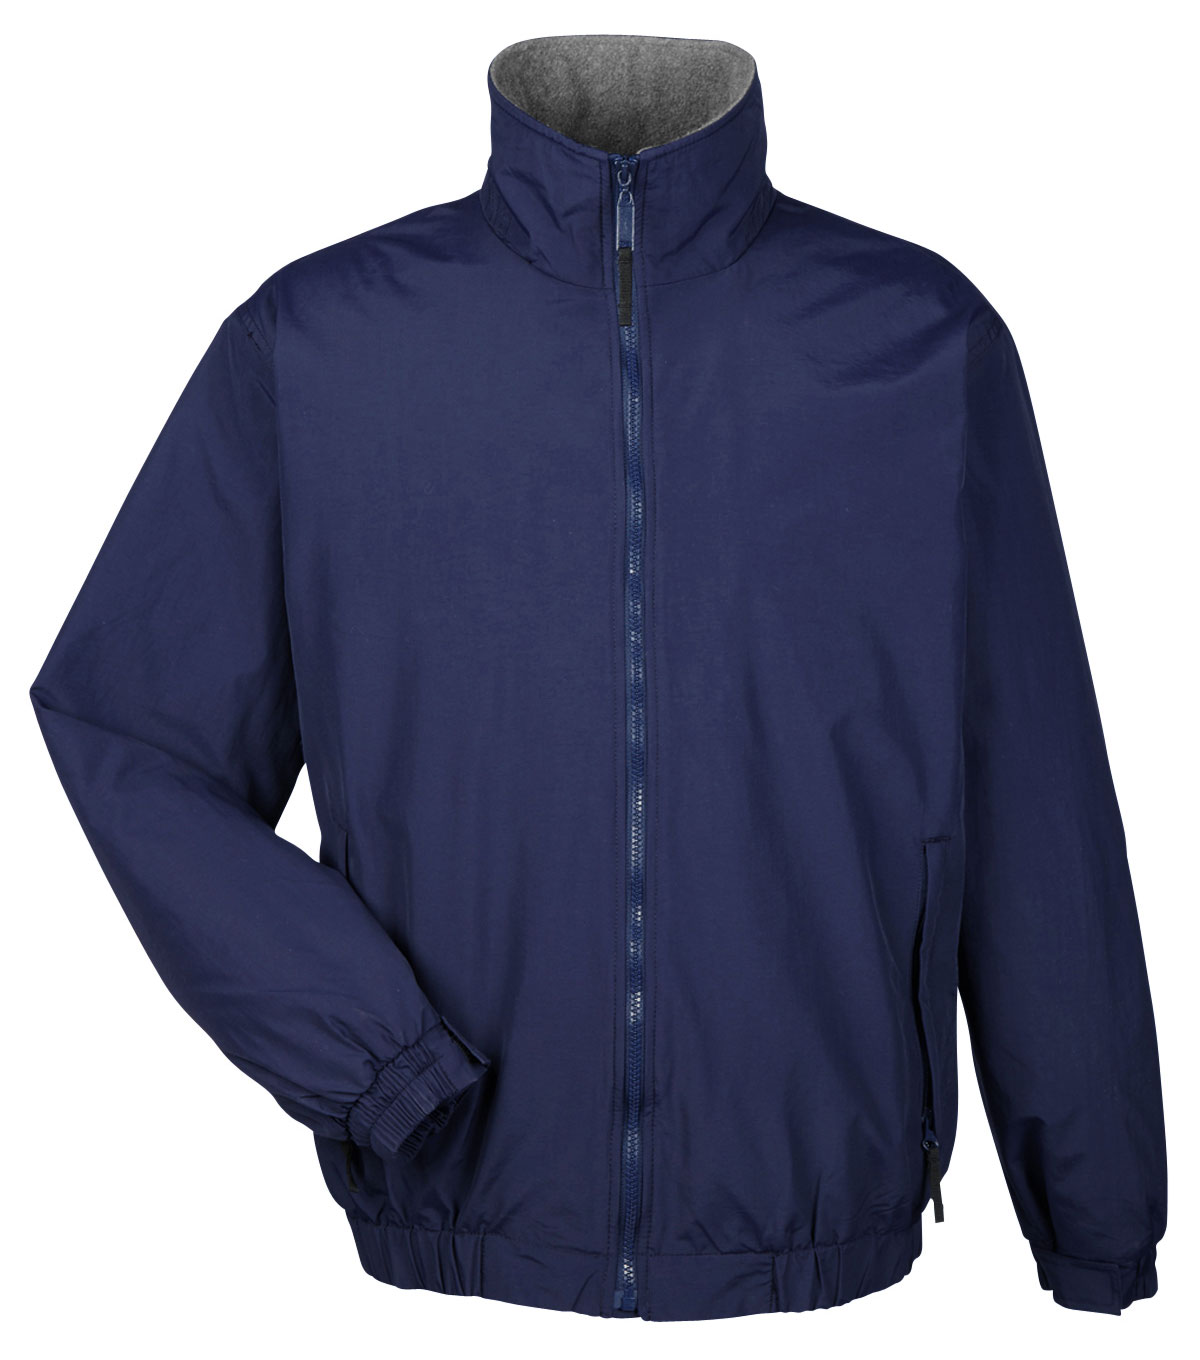 All-Weather Jacket with Fleece Lining